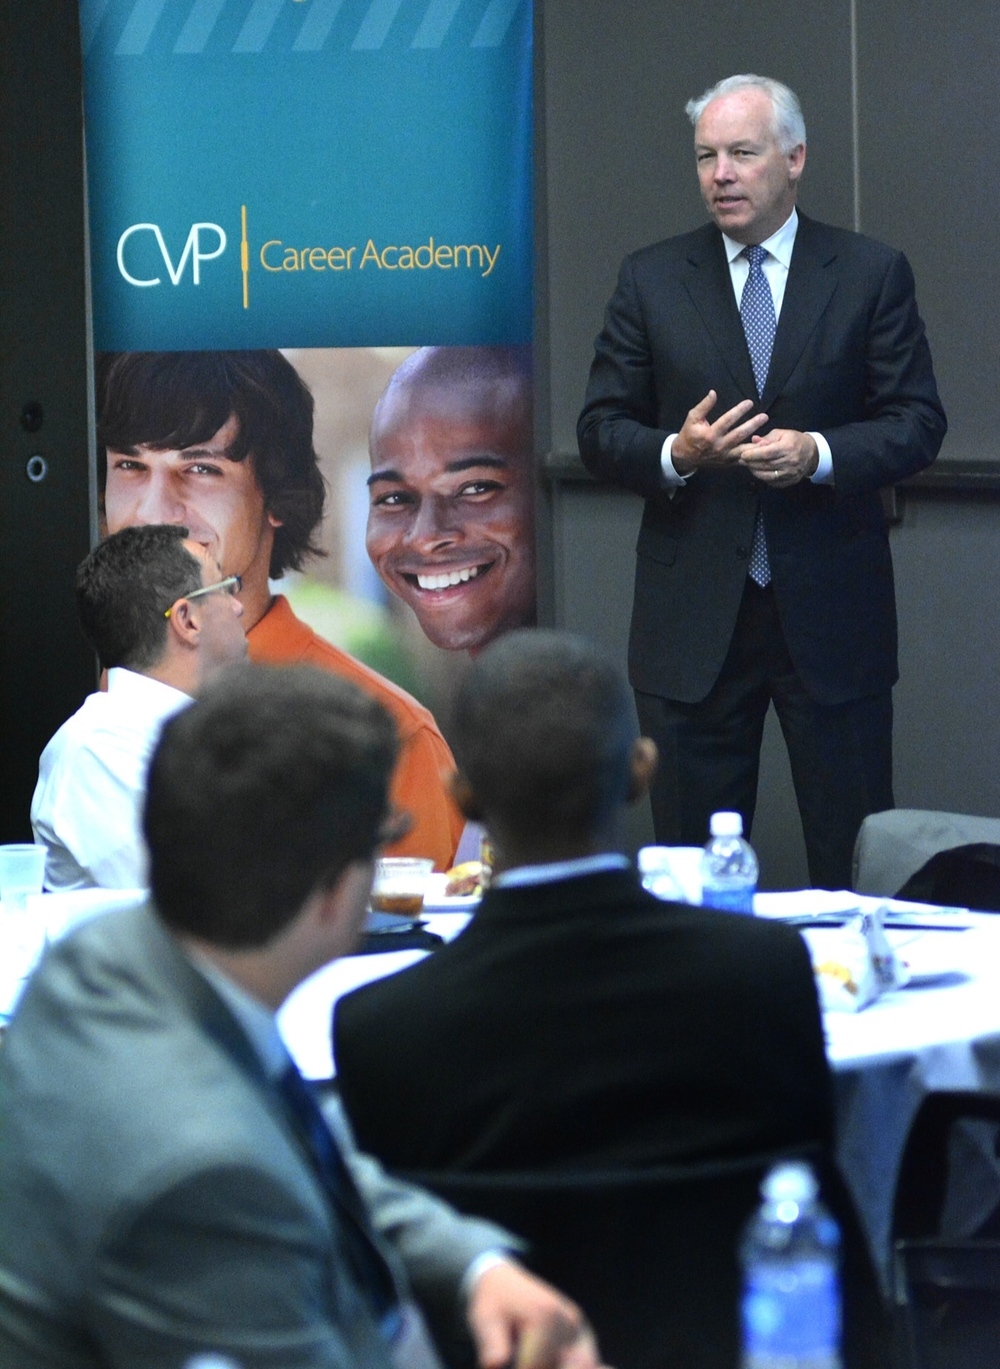 Dick Galvin, President & CEO of CV Properties, welcomes the 2015 CVP Career Academy Class.